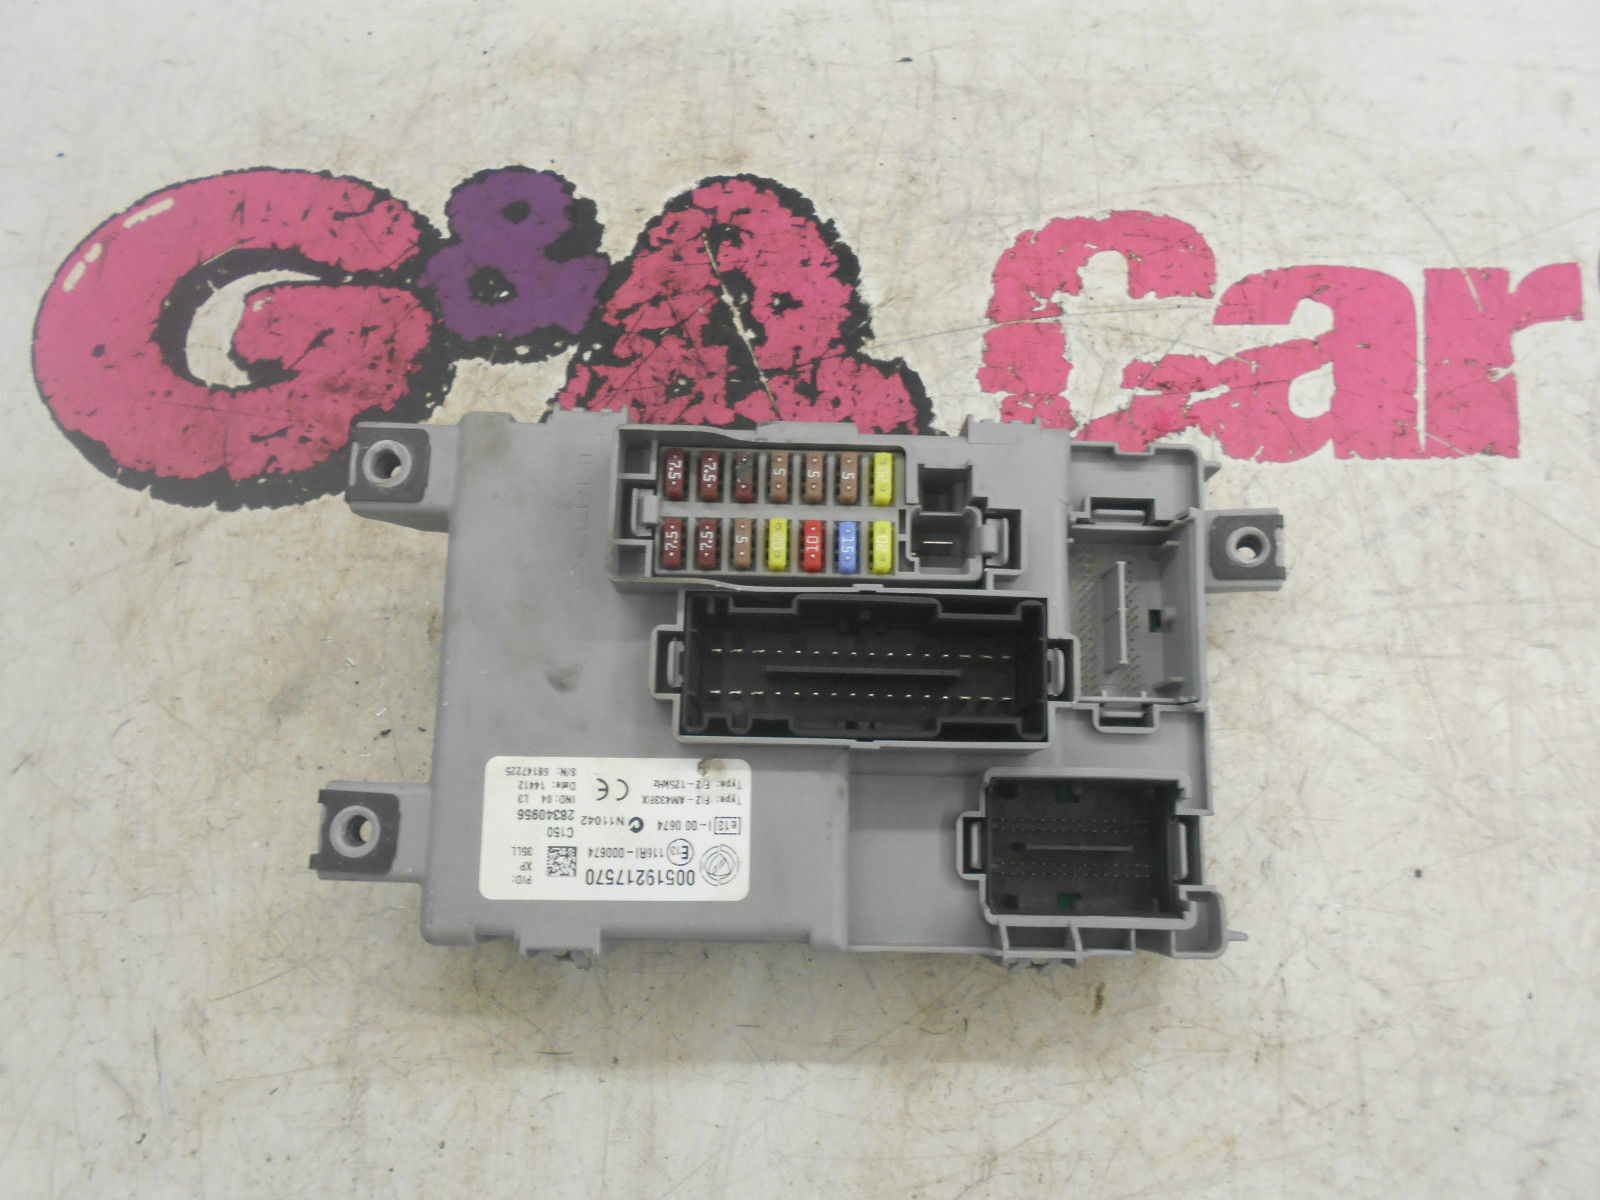 Fiat Doblo 14 16v Petrol Fuse Box Board 2009 15 5999 In Stilo 1 Of 3only Available